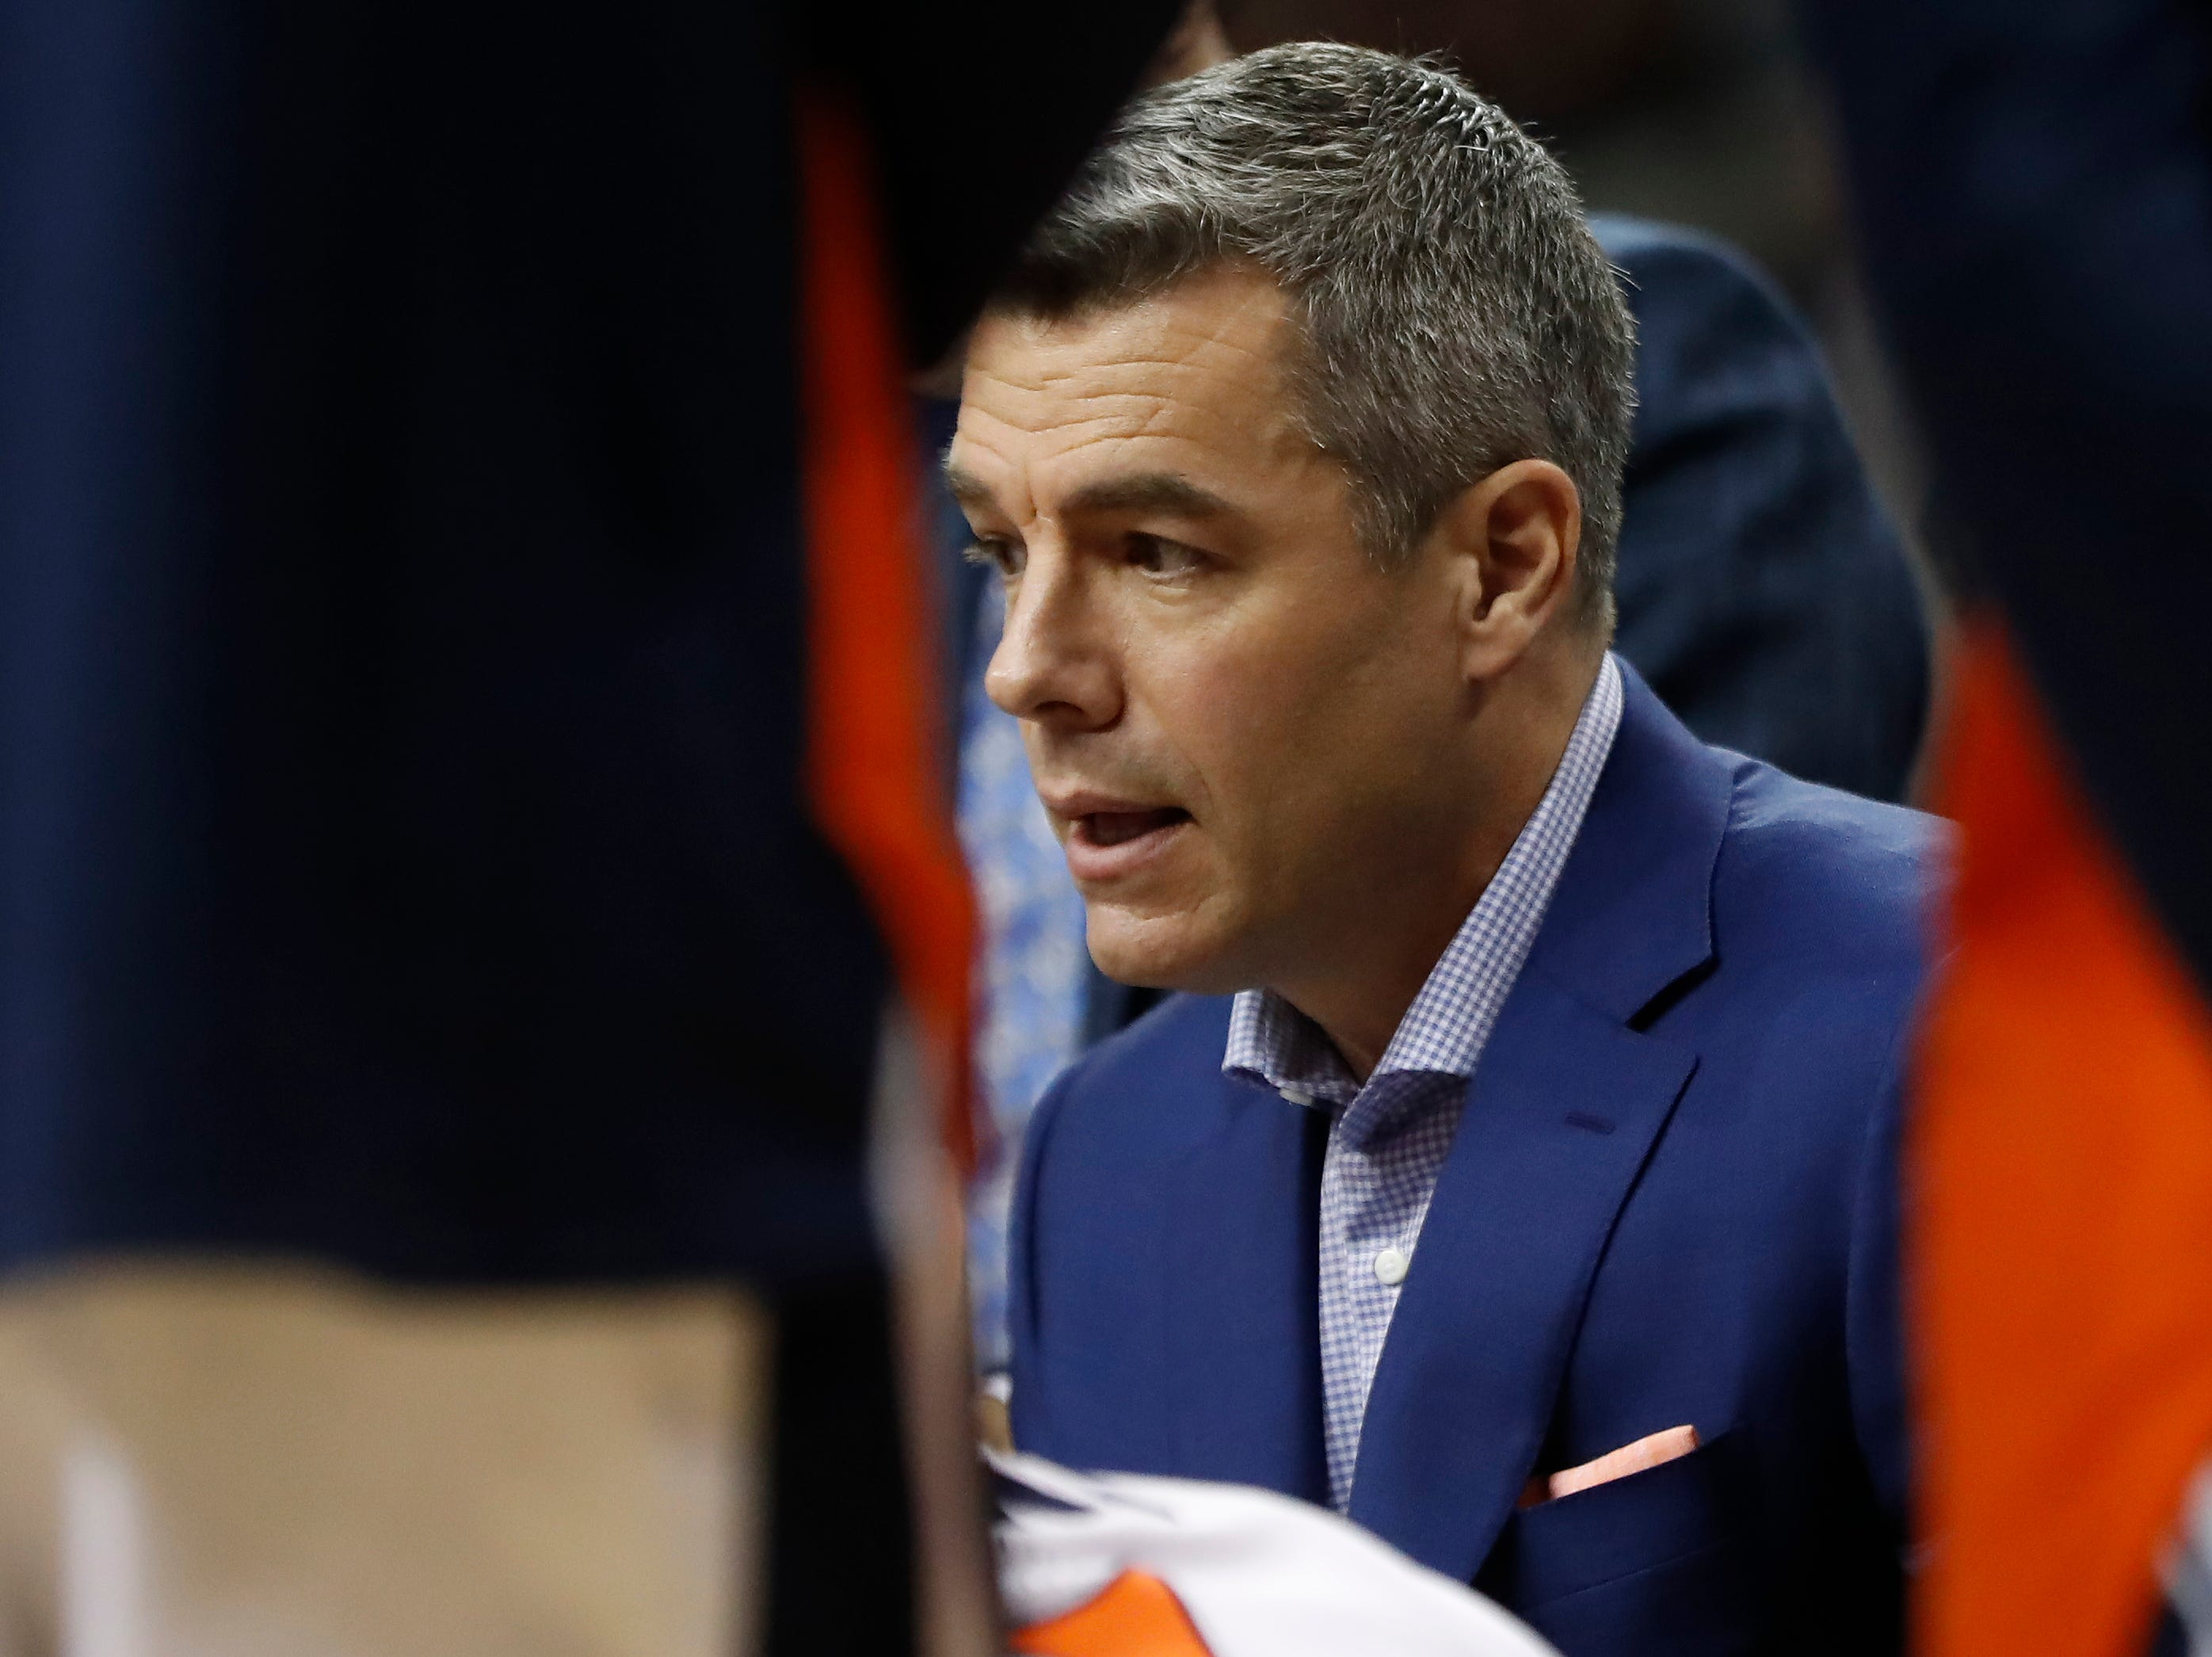 Jan 5, 2019; Charlottesville, VA, USA; Virginia Cavaliers head coach Tony Bennett talks to his team in a huddle during a timeout against the Florida State Seminoles in the second half at John Paul Jones Arena. Mandatory Credit: Geoff Burke-USA TODAY Sports